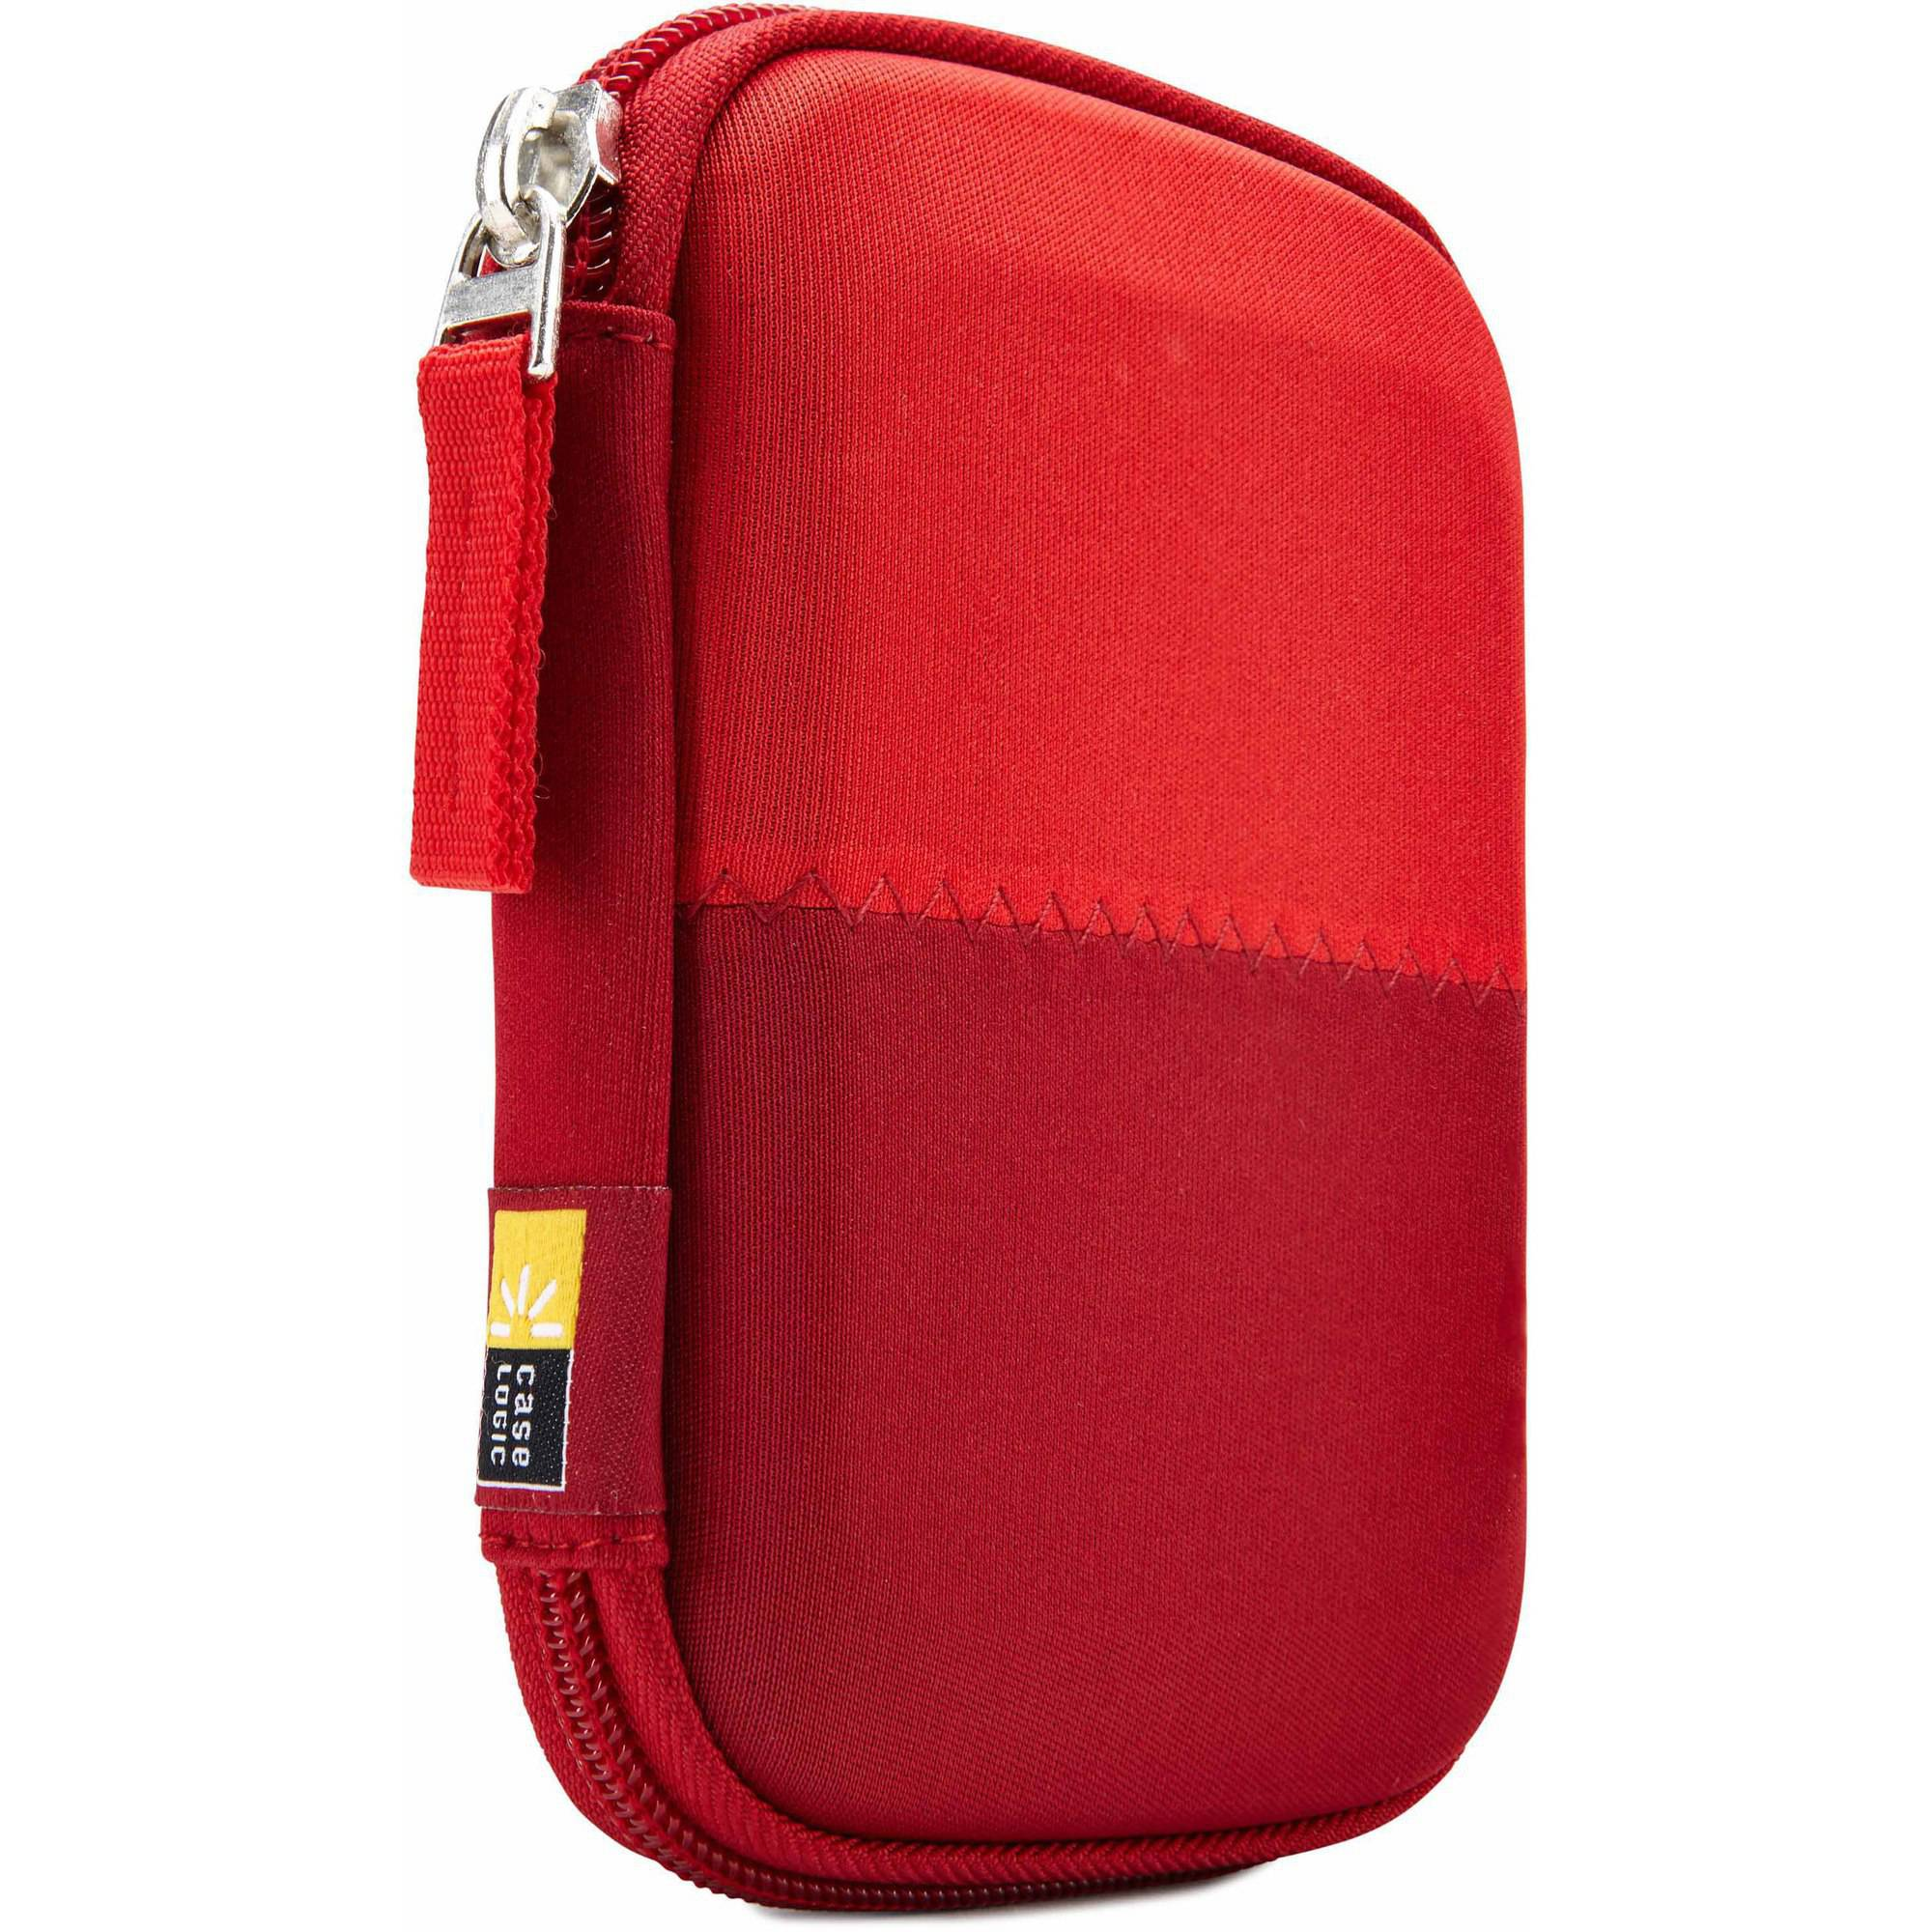 Case Logic HDC-11 Portable Hard Drive Case, Burgundy